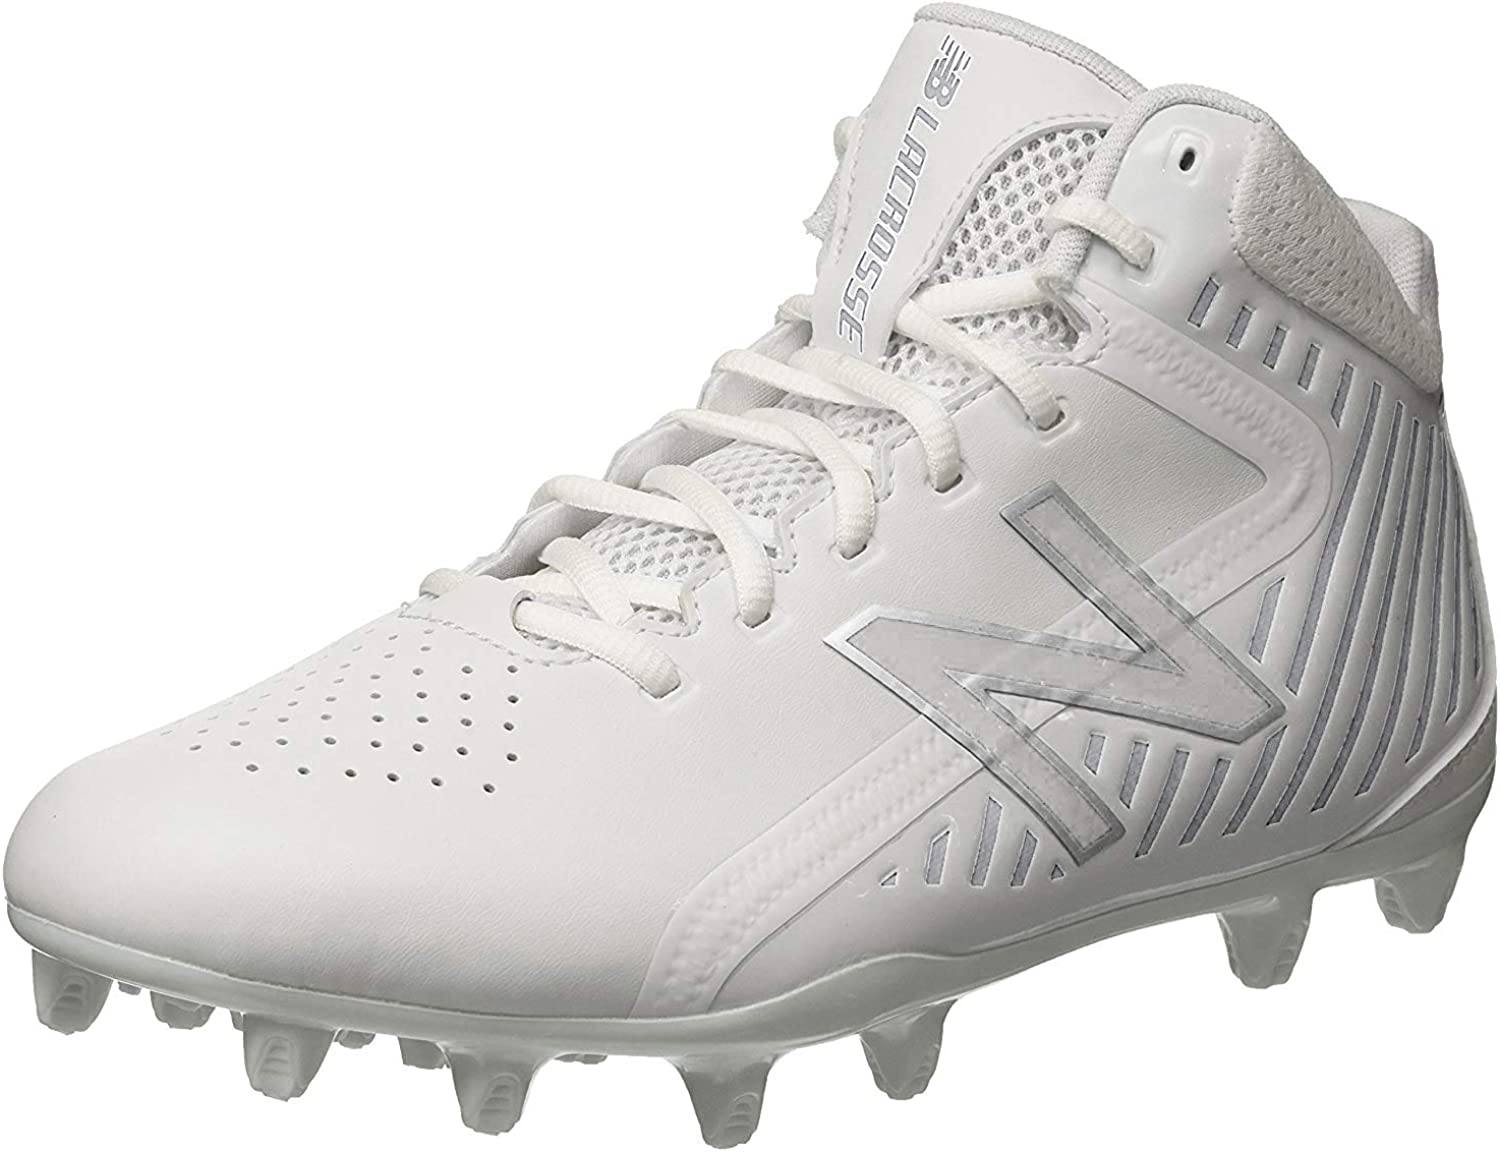 new balance cleats